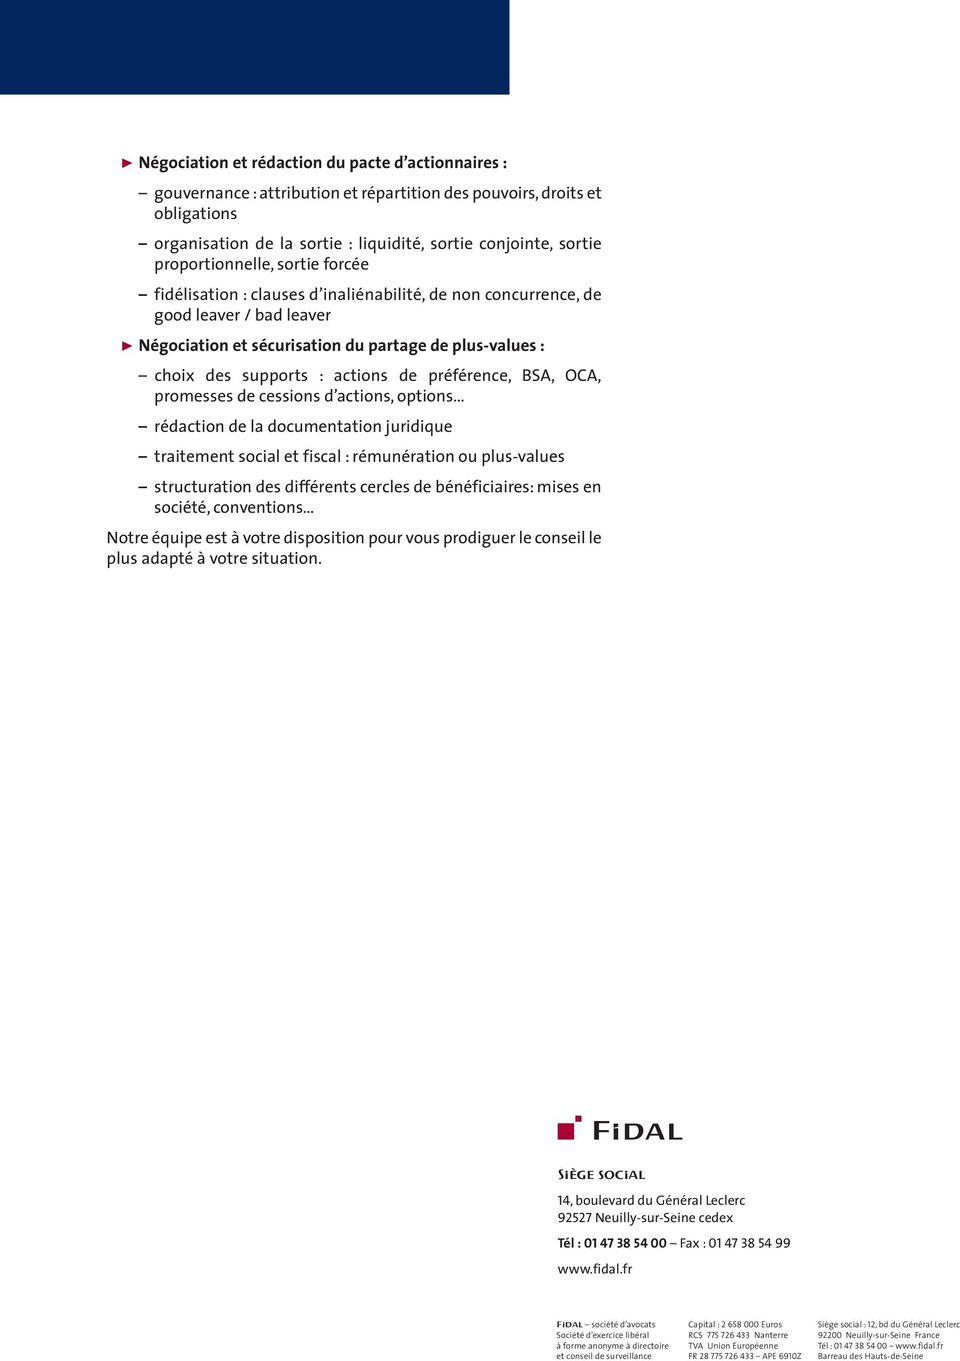 actions de préférence, BSA, OCA, promesses de cessions d actions, options rédaction de la documentation juridique traitement social et fiscal : rémunération ou plus-values structuration des